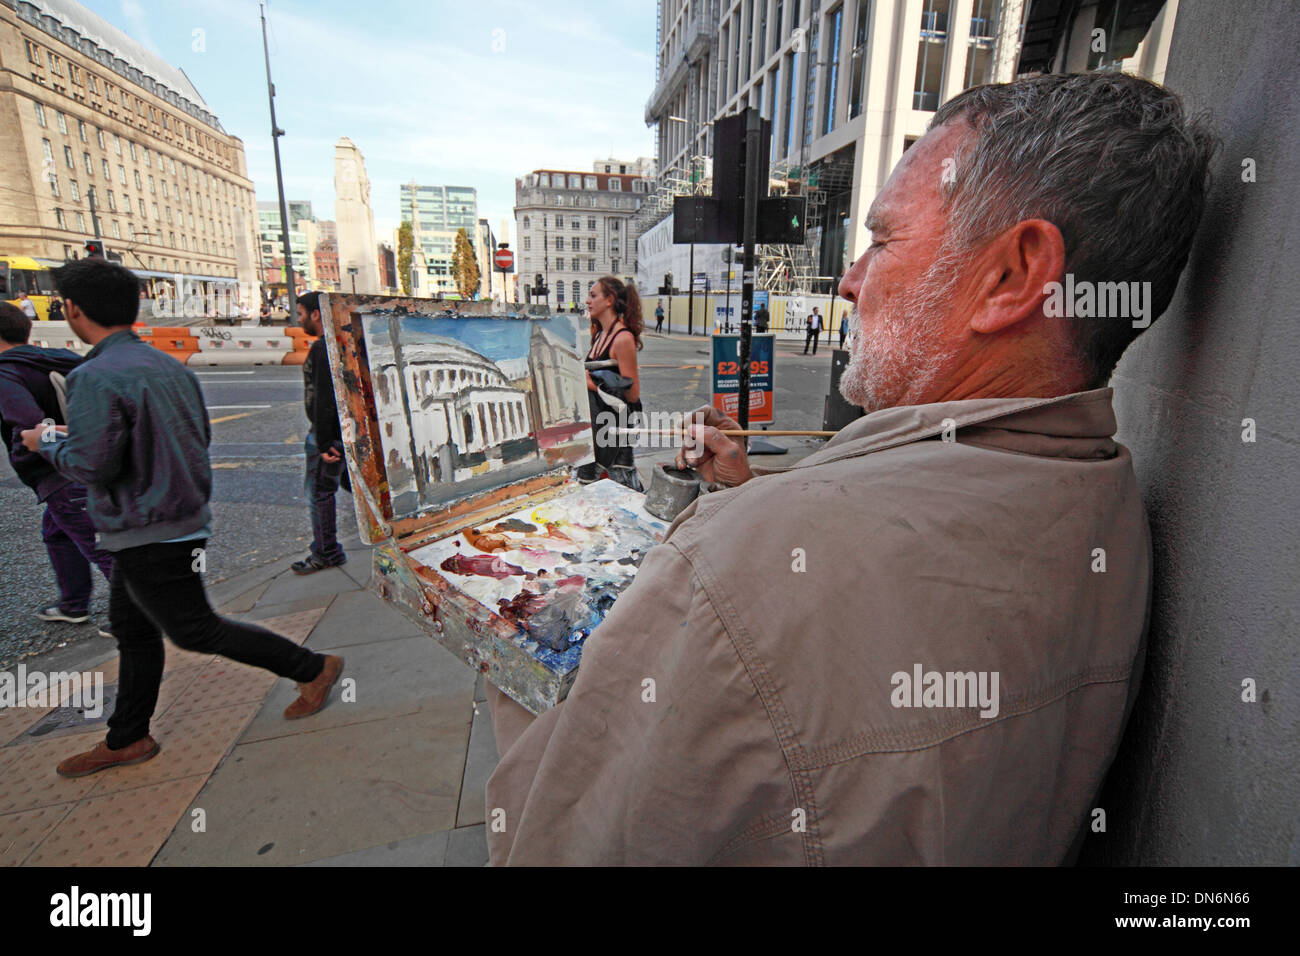 Street artist in Manchester City Centre England UK - Stock Image